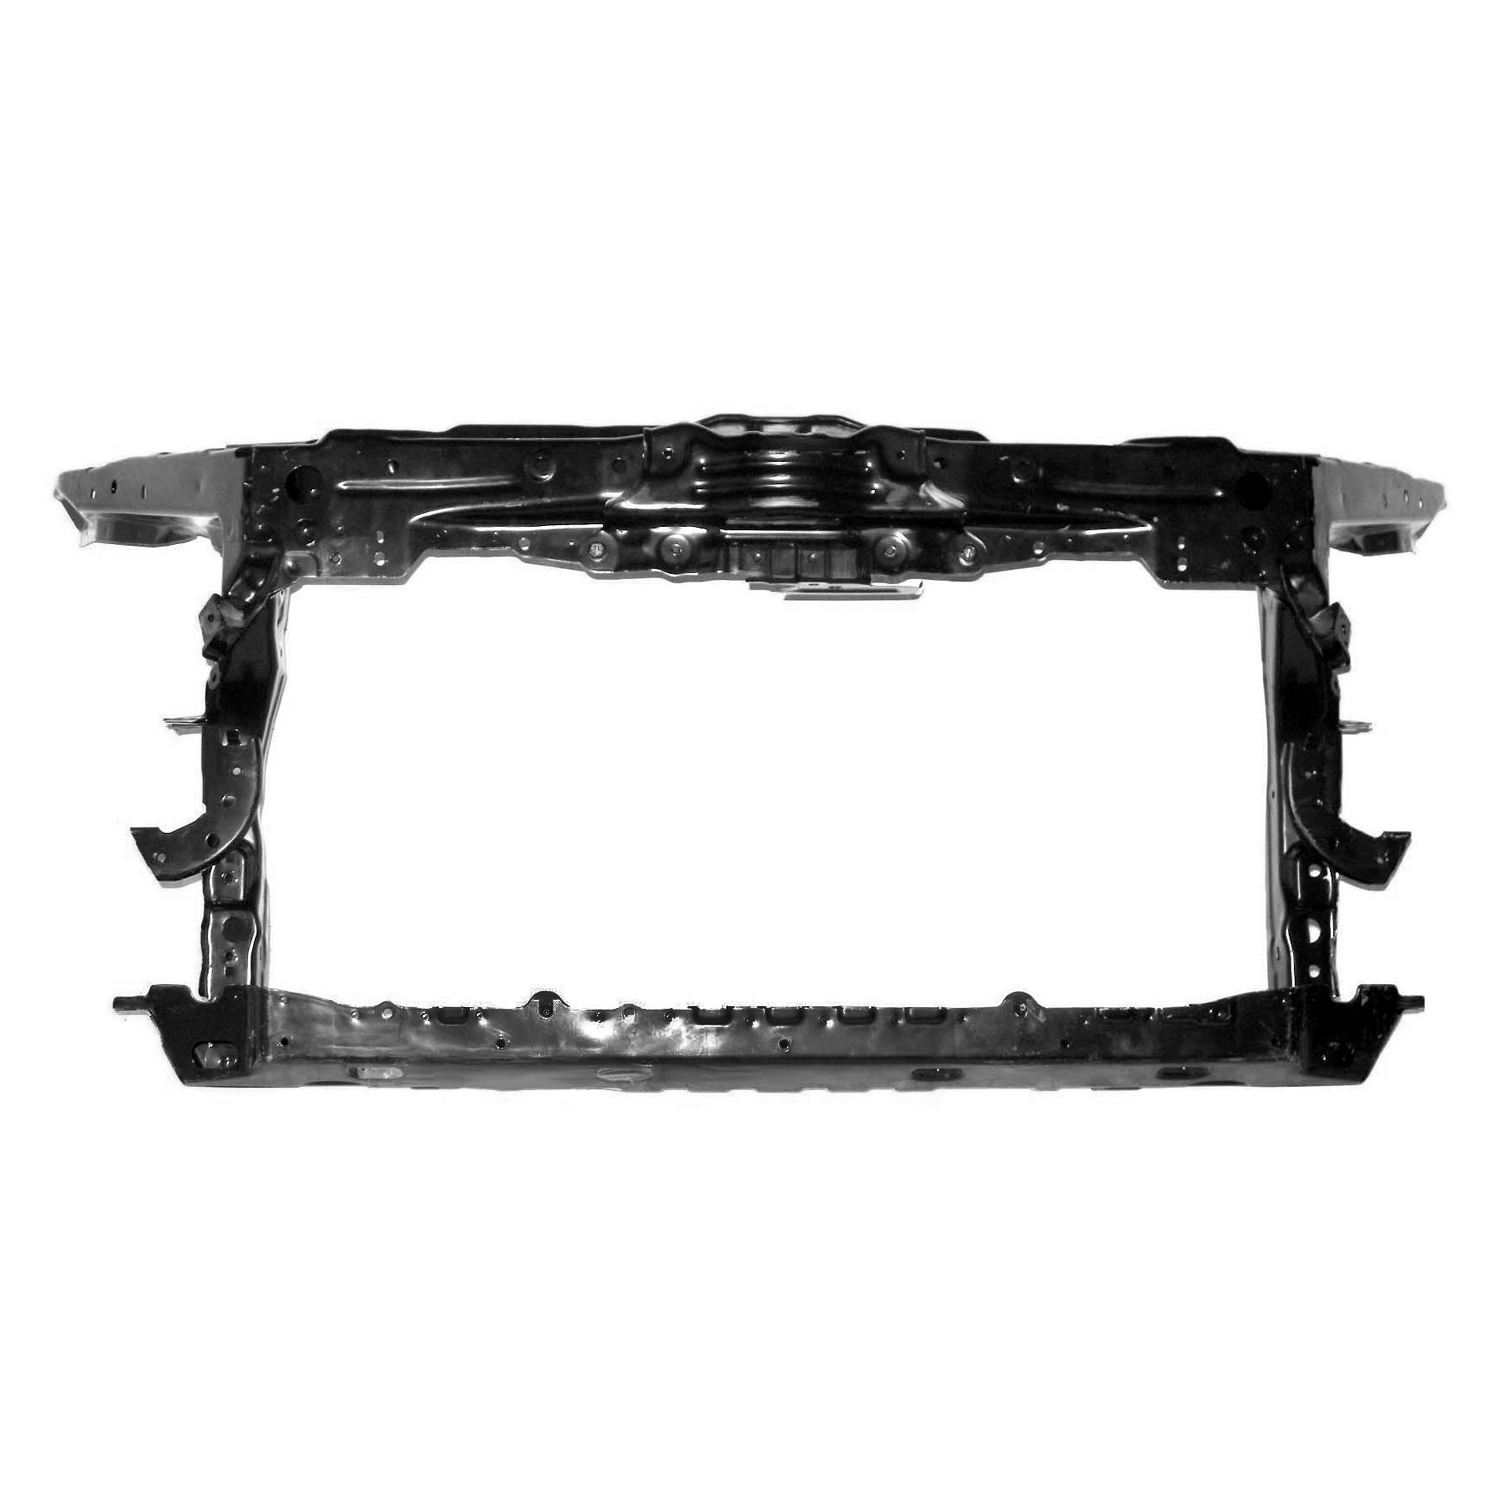 AC1225130 Front Radiator Support Fits 2012-2014 Acura TL 3